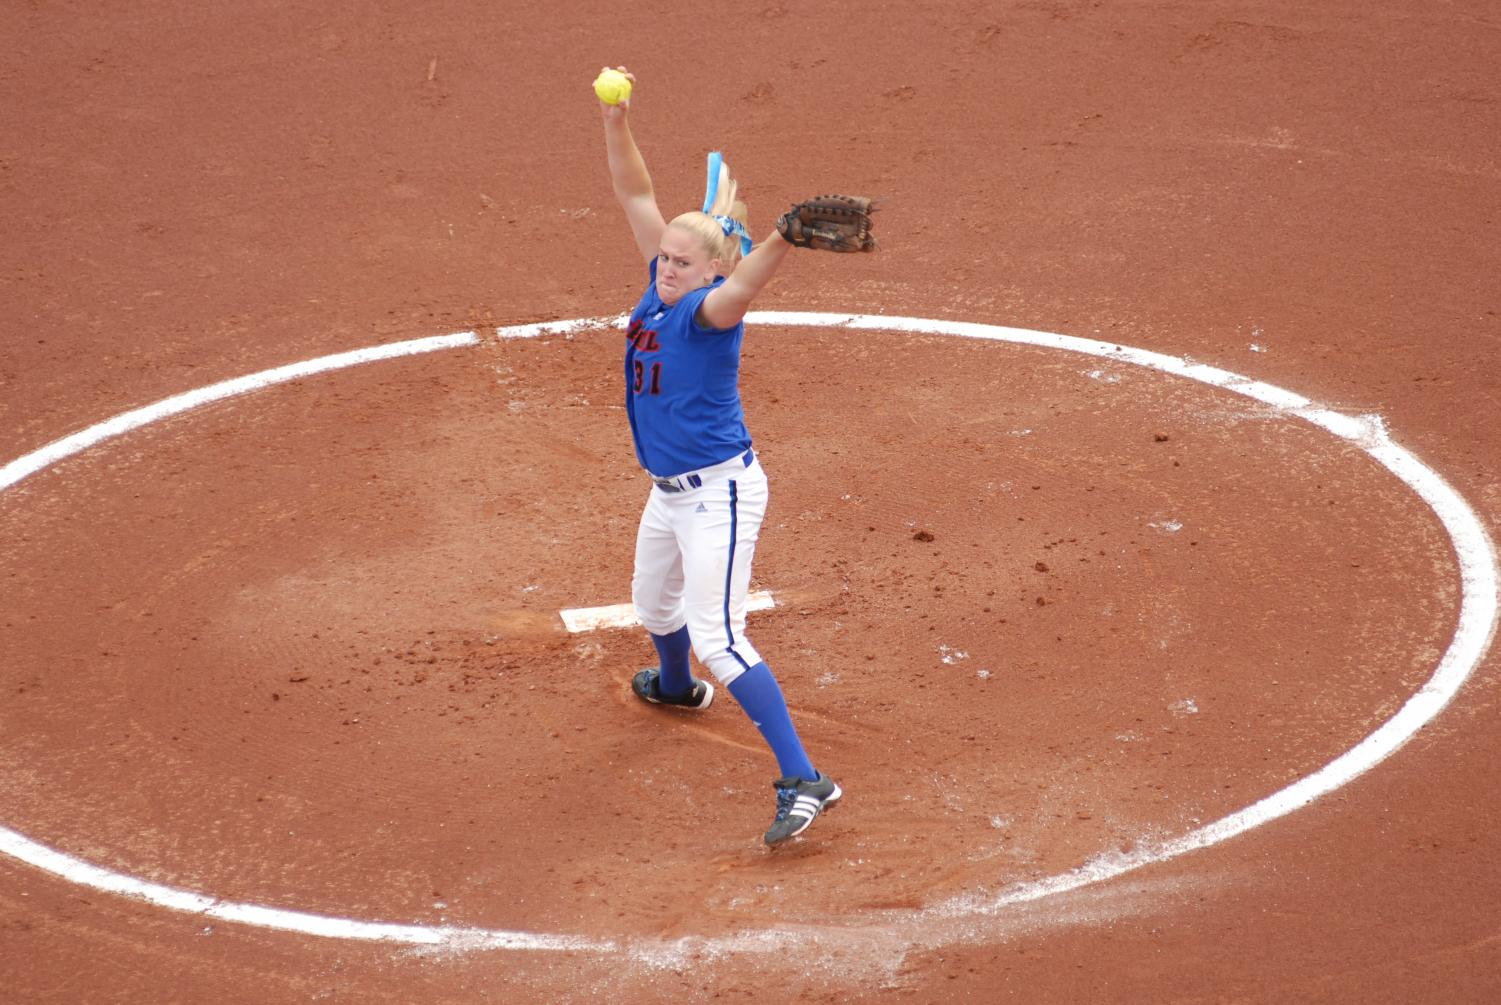 Tracie Adix-Zins was a star pitcher for the Blue Demons from 2003 until 2007. (Photo Courtesy of DePaul Athletics)